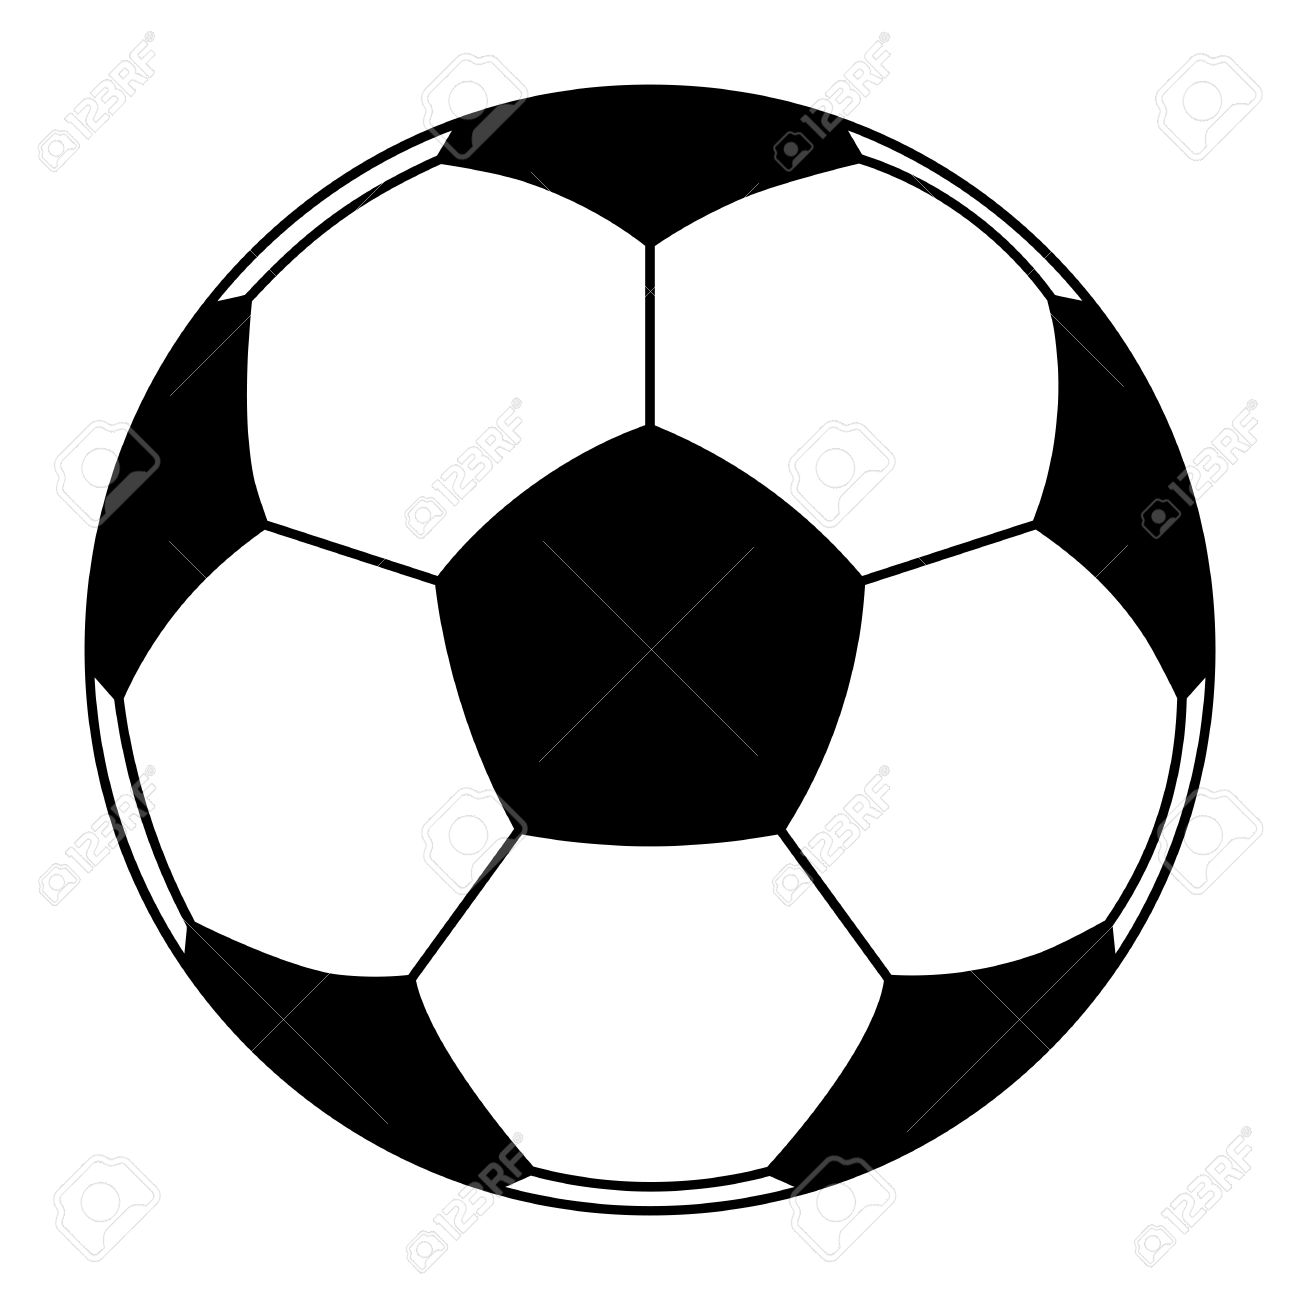 vector icon of soccer ball isolated clip art royalty free cliparts rh 123rf com soccer ball clip art background soccer ball clip art shape of letters